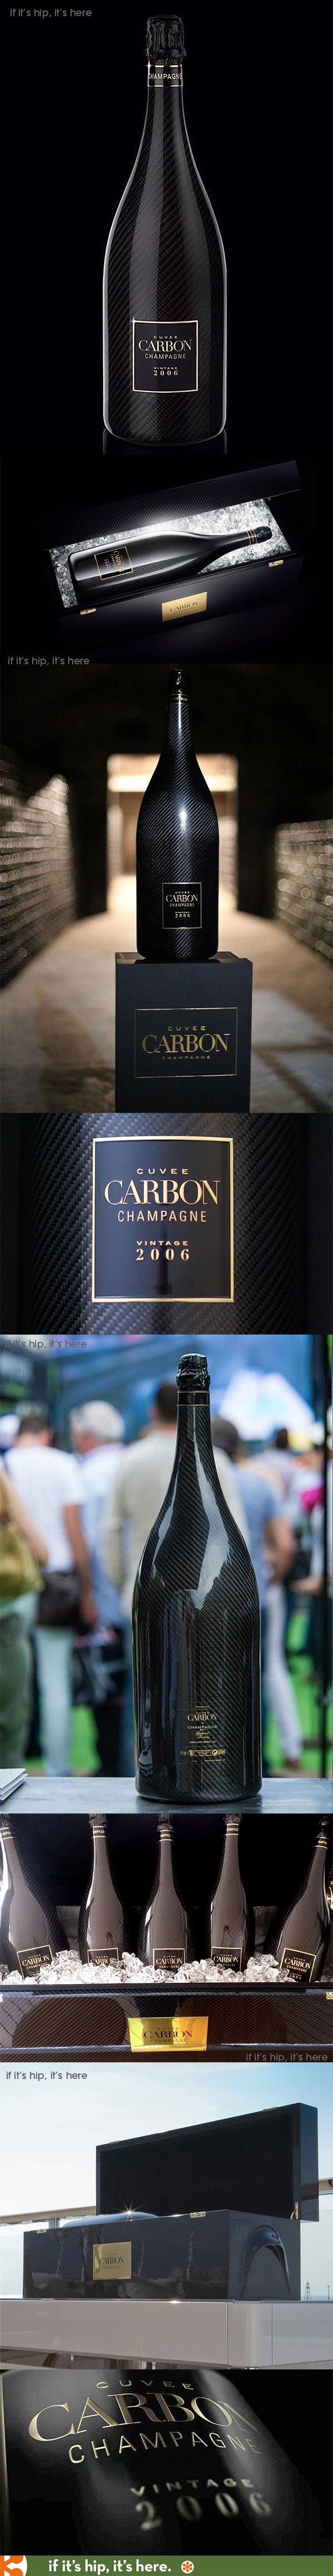 The House of Devavry's elegant and luxurious Carbon Cuvée Champagne is a bit of bubbly clad in a carbon fiber wrapped bottle for $3000 a pop.